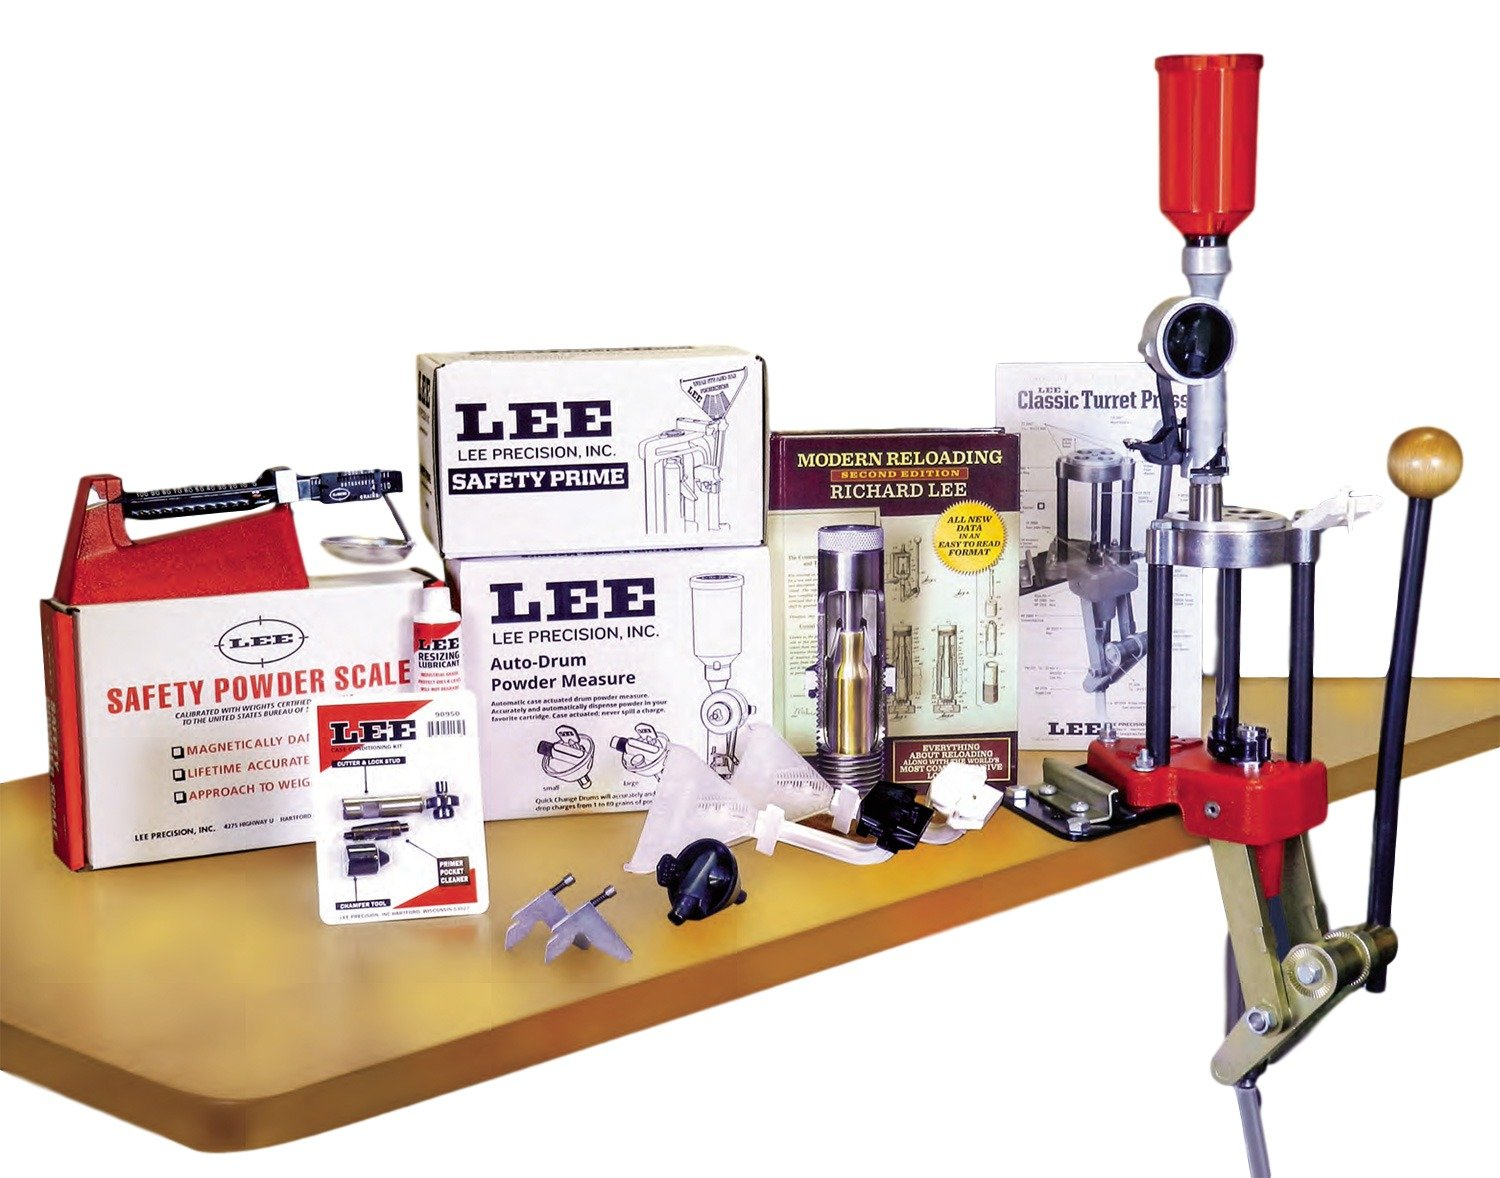 LEE PRECISION Classic Turret Press Kit by LEE PRECISION